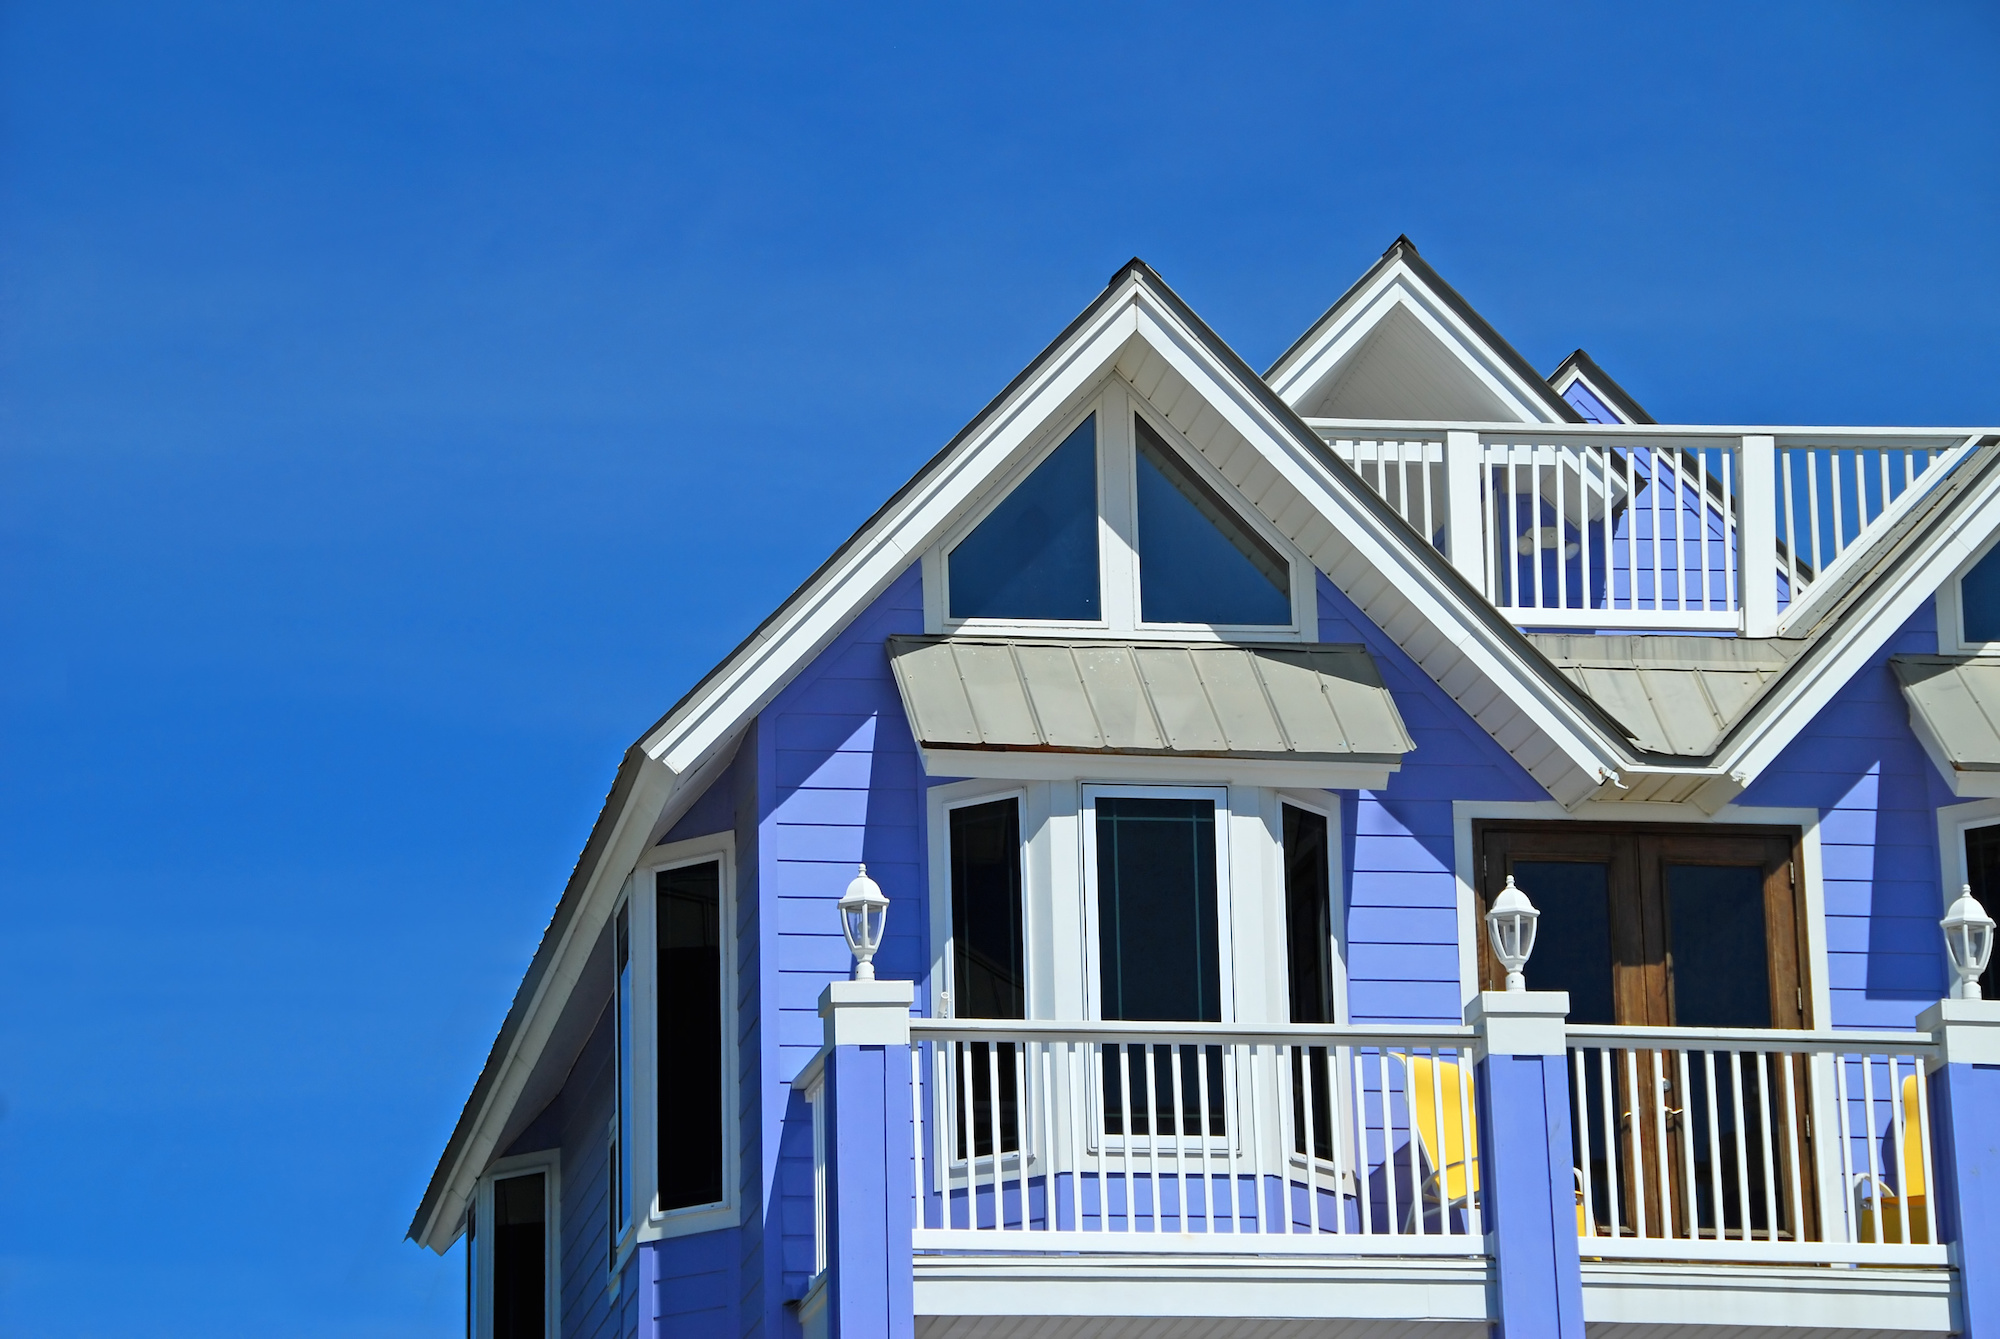 5 Tips For Insuring A Vacation Home In The U.S.